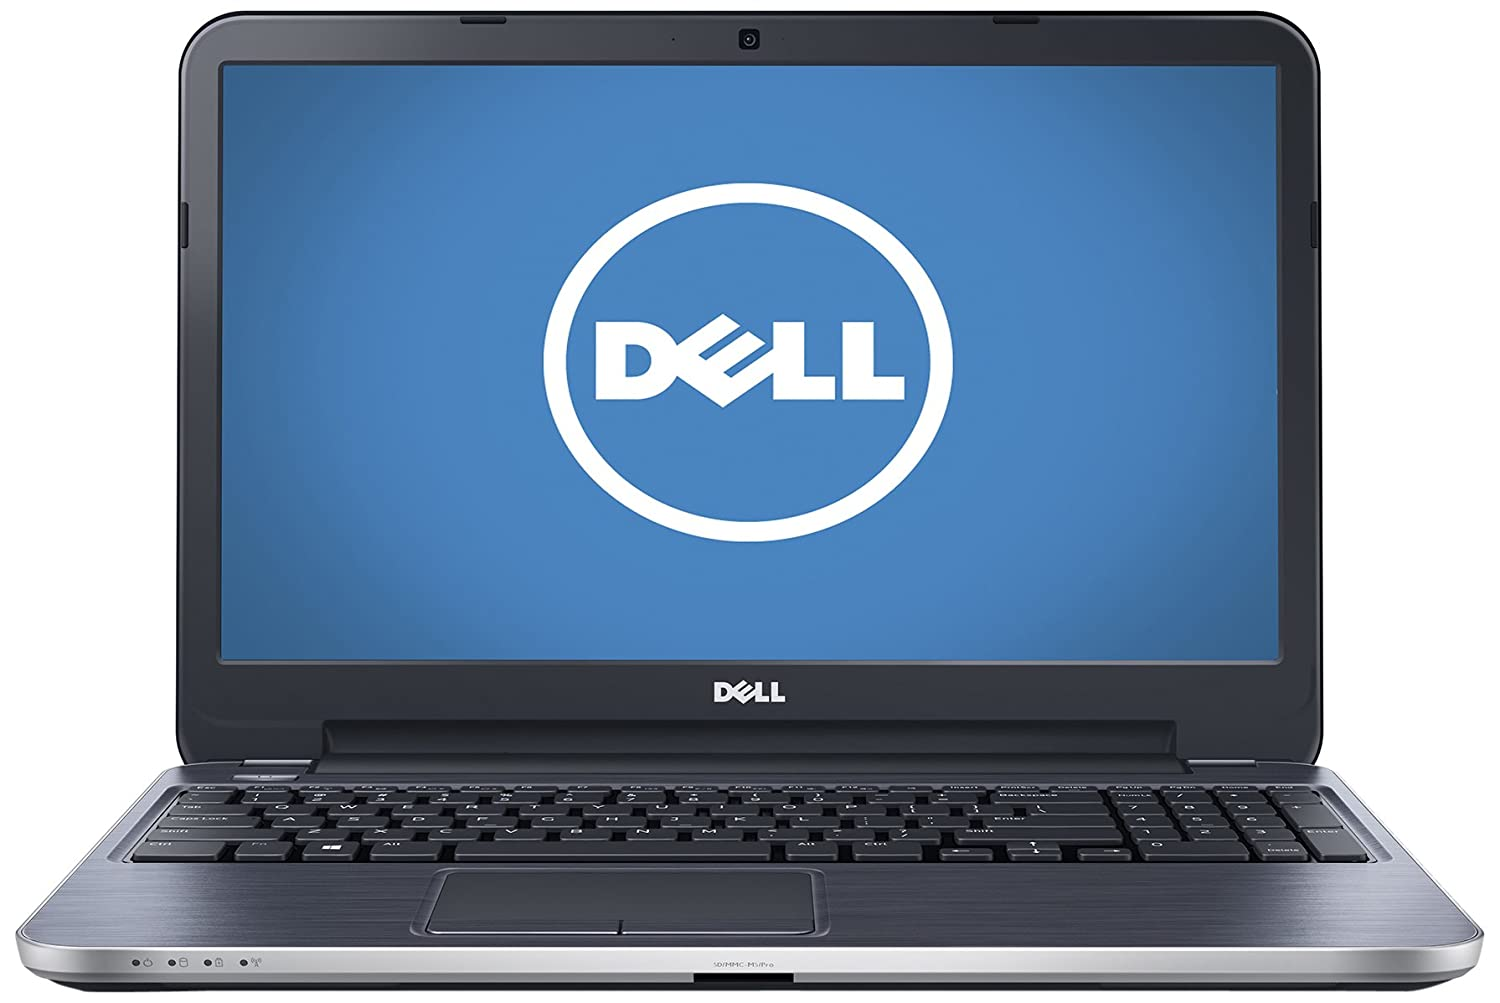 Dell Inspiron i15RM-7565sLV 15.6-Inch Laptop